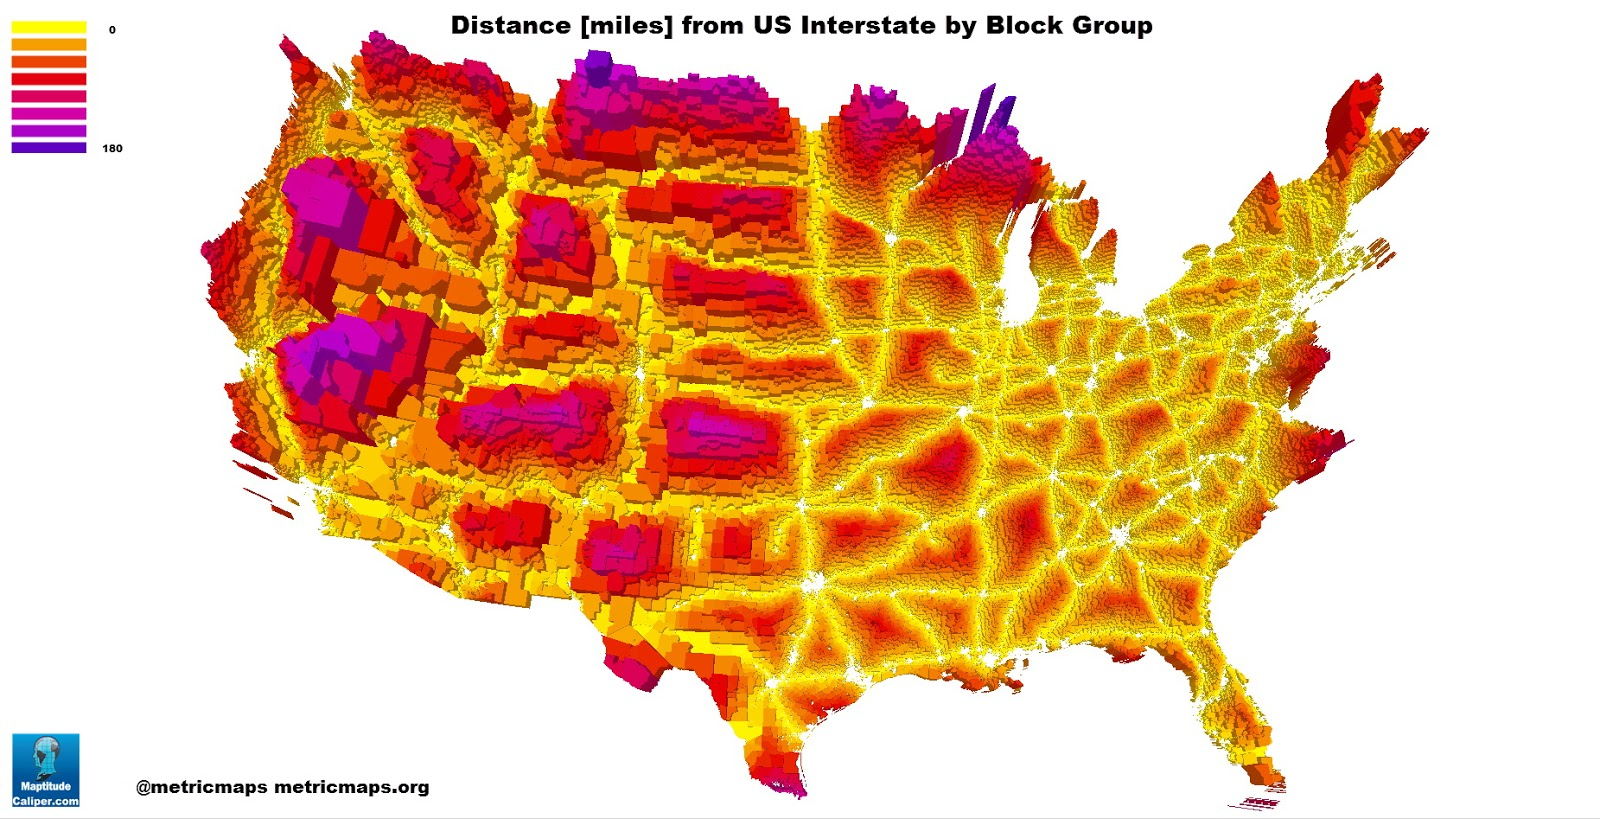 Distance from U.S. interstate by block group